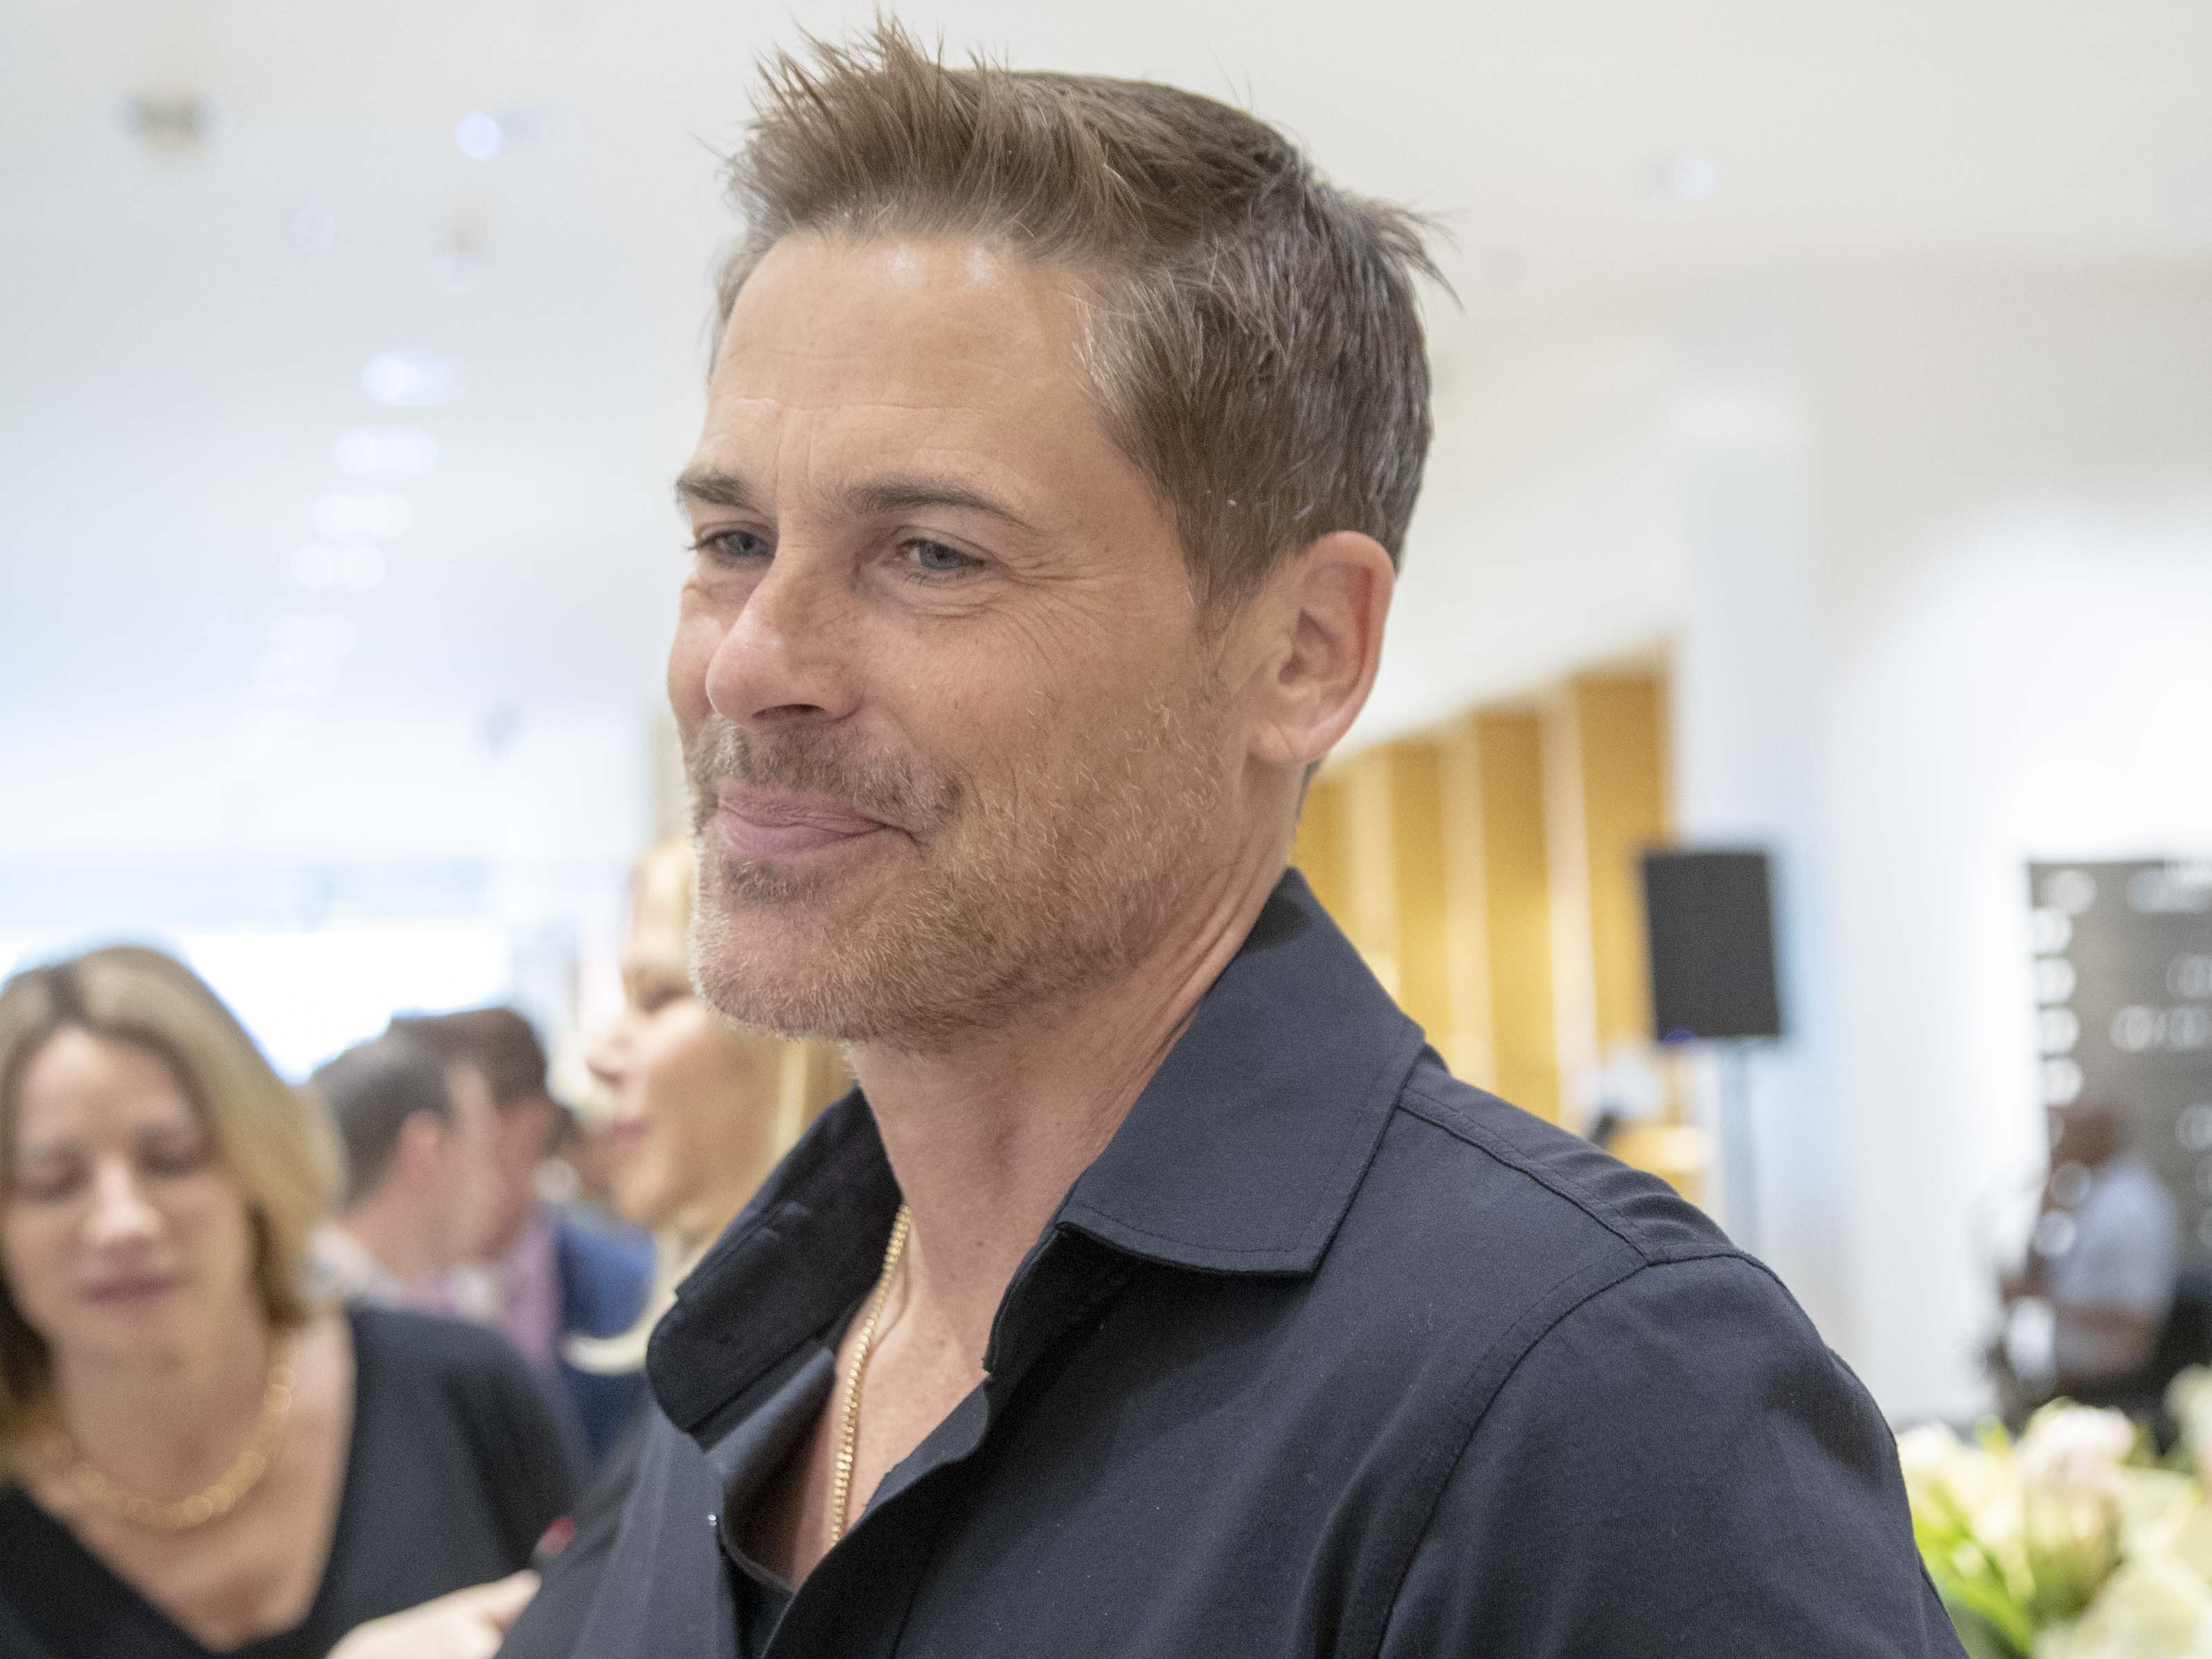 Actor Rob Lowe and his wife Sheryl Lowe launch their first men's jewelry collection at Scottsdale Fashion Square on March 28, 2019. It's called Mr. Lowe and is inspired by Rob and the couple'stwo sons,Matthew and John Owen.